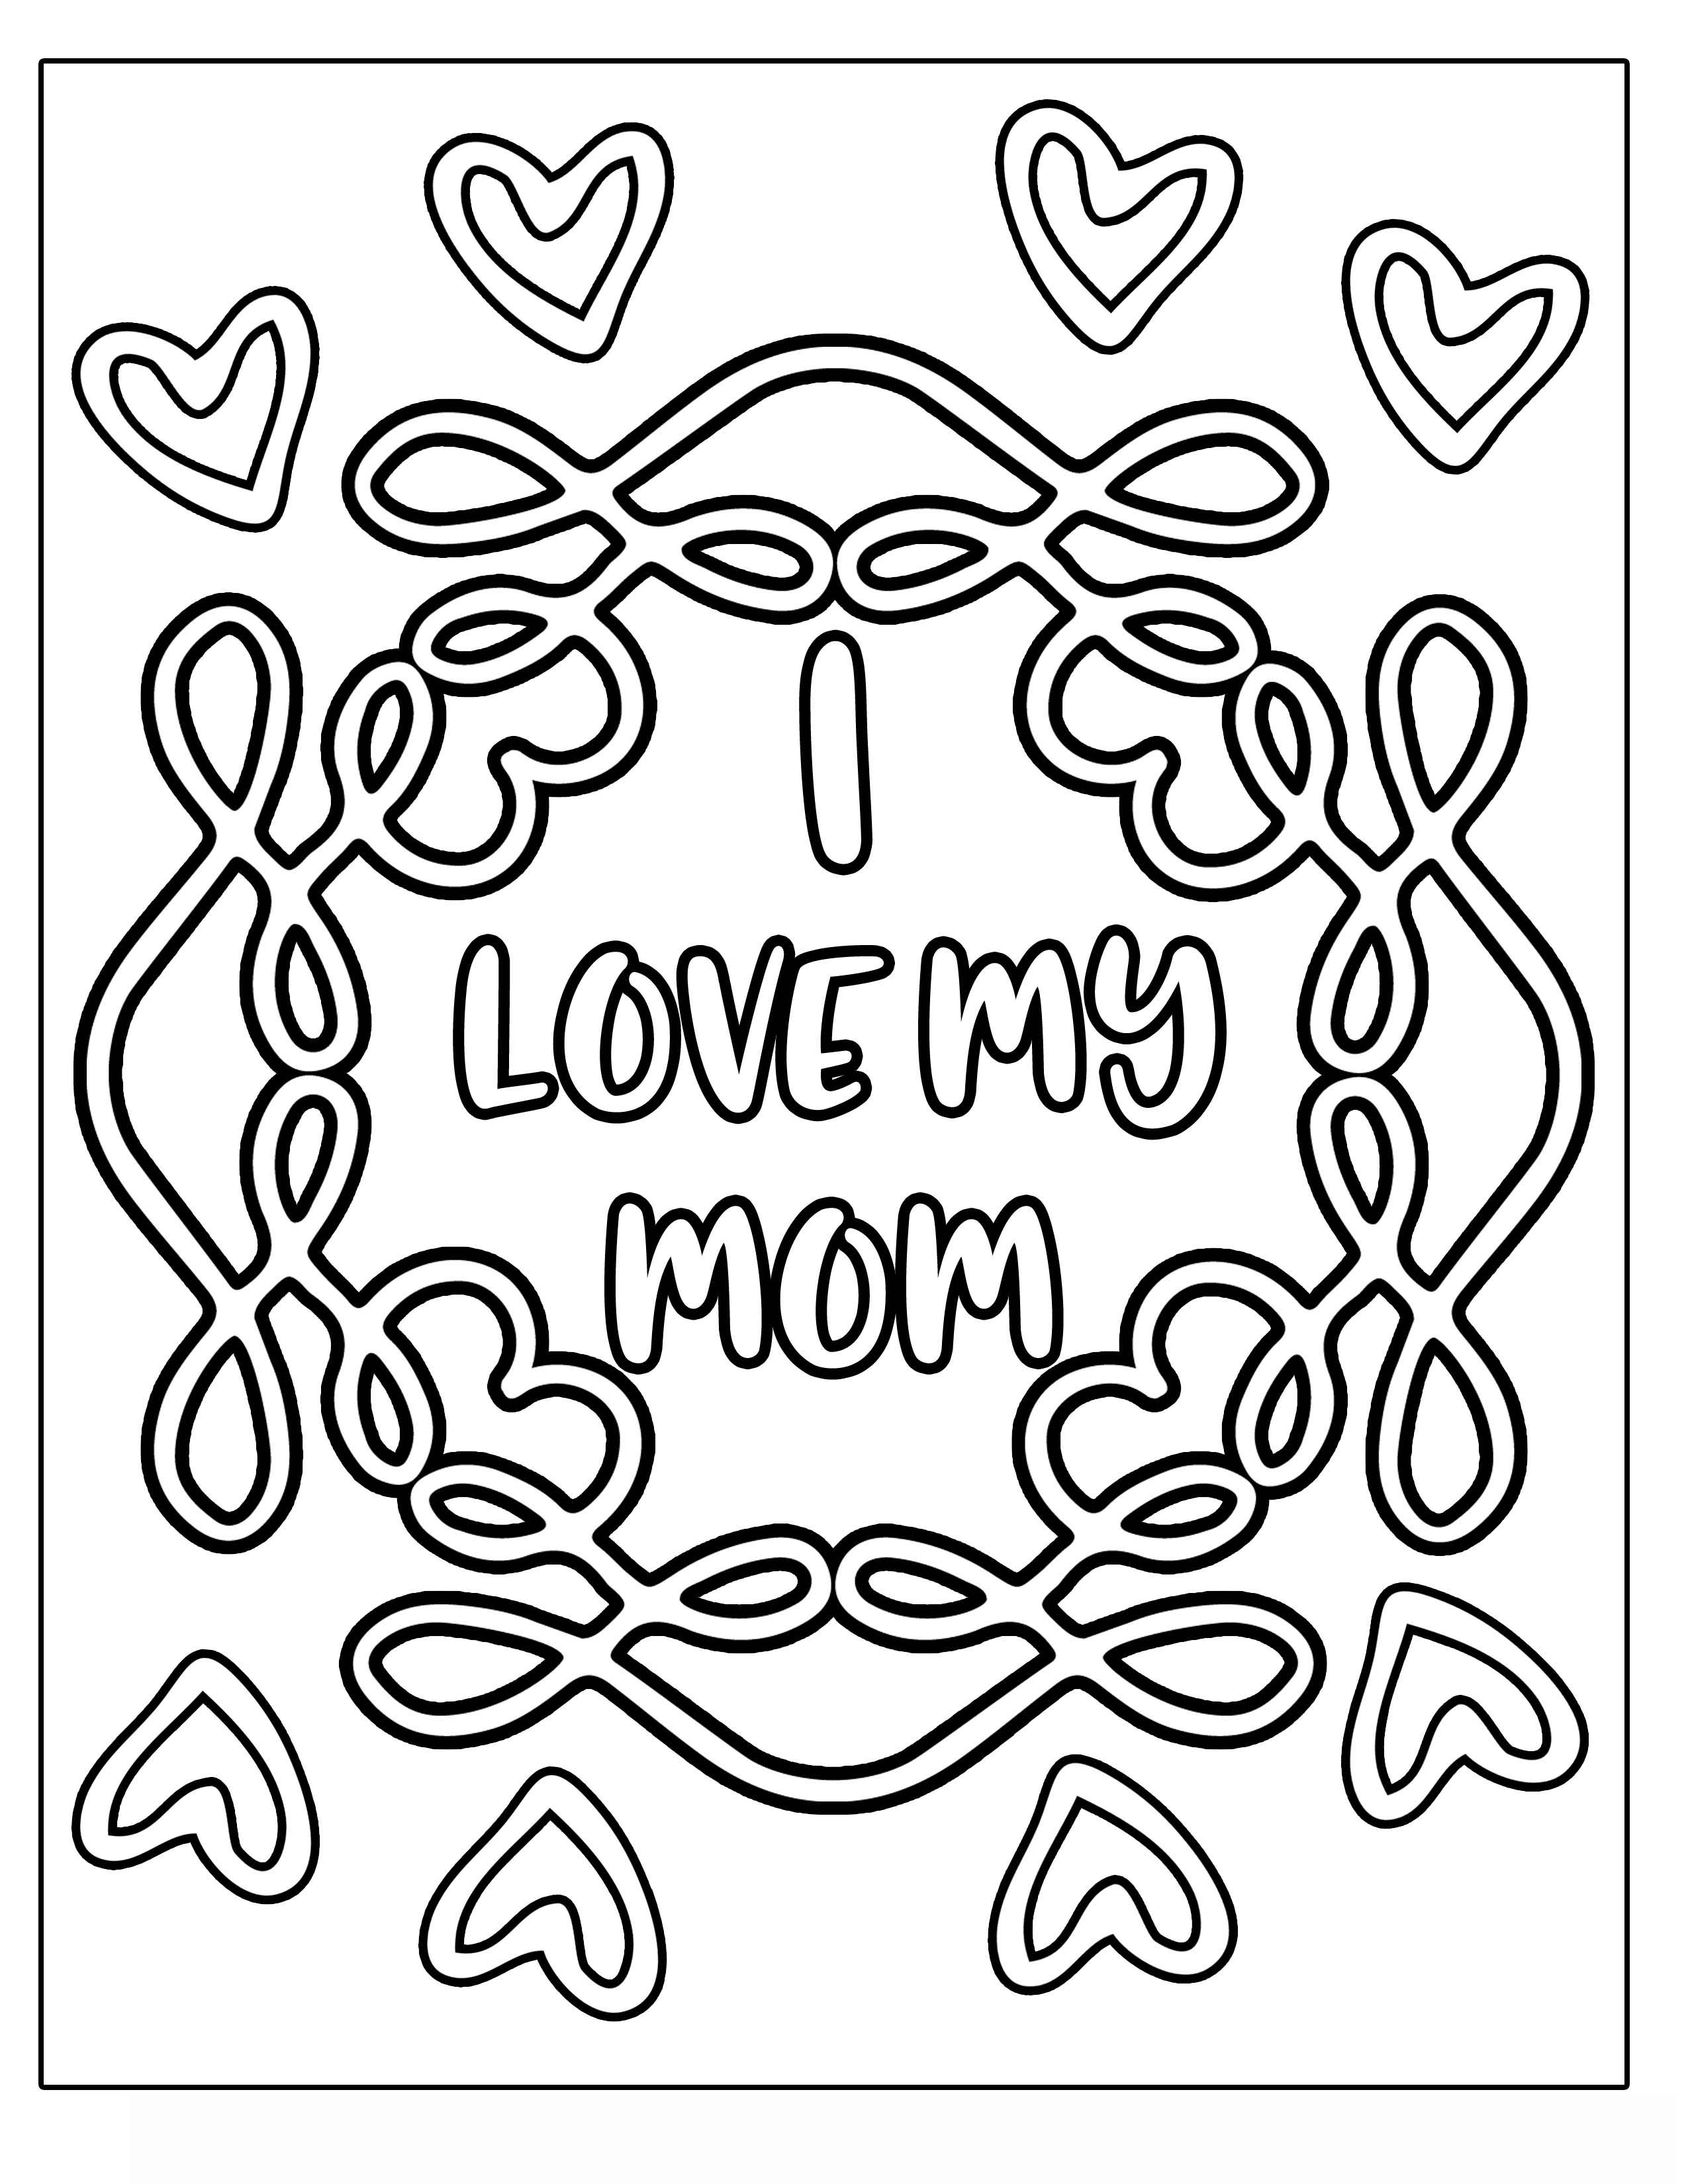 I LOVE MY MOM MOTHER'S DAY flower with vines and frills Clipart Coloring Pages for Kids Adults Art Activities Line Art